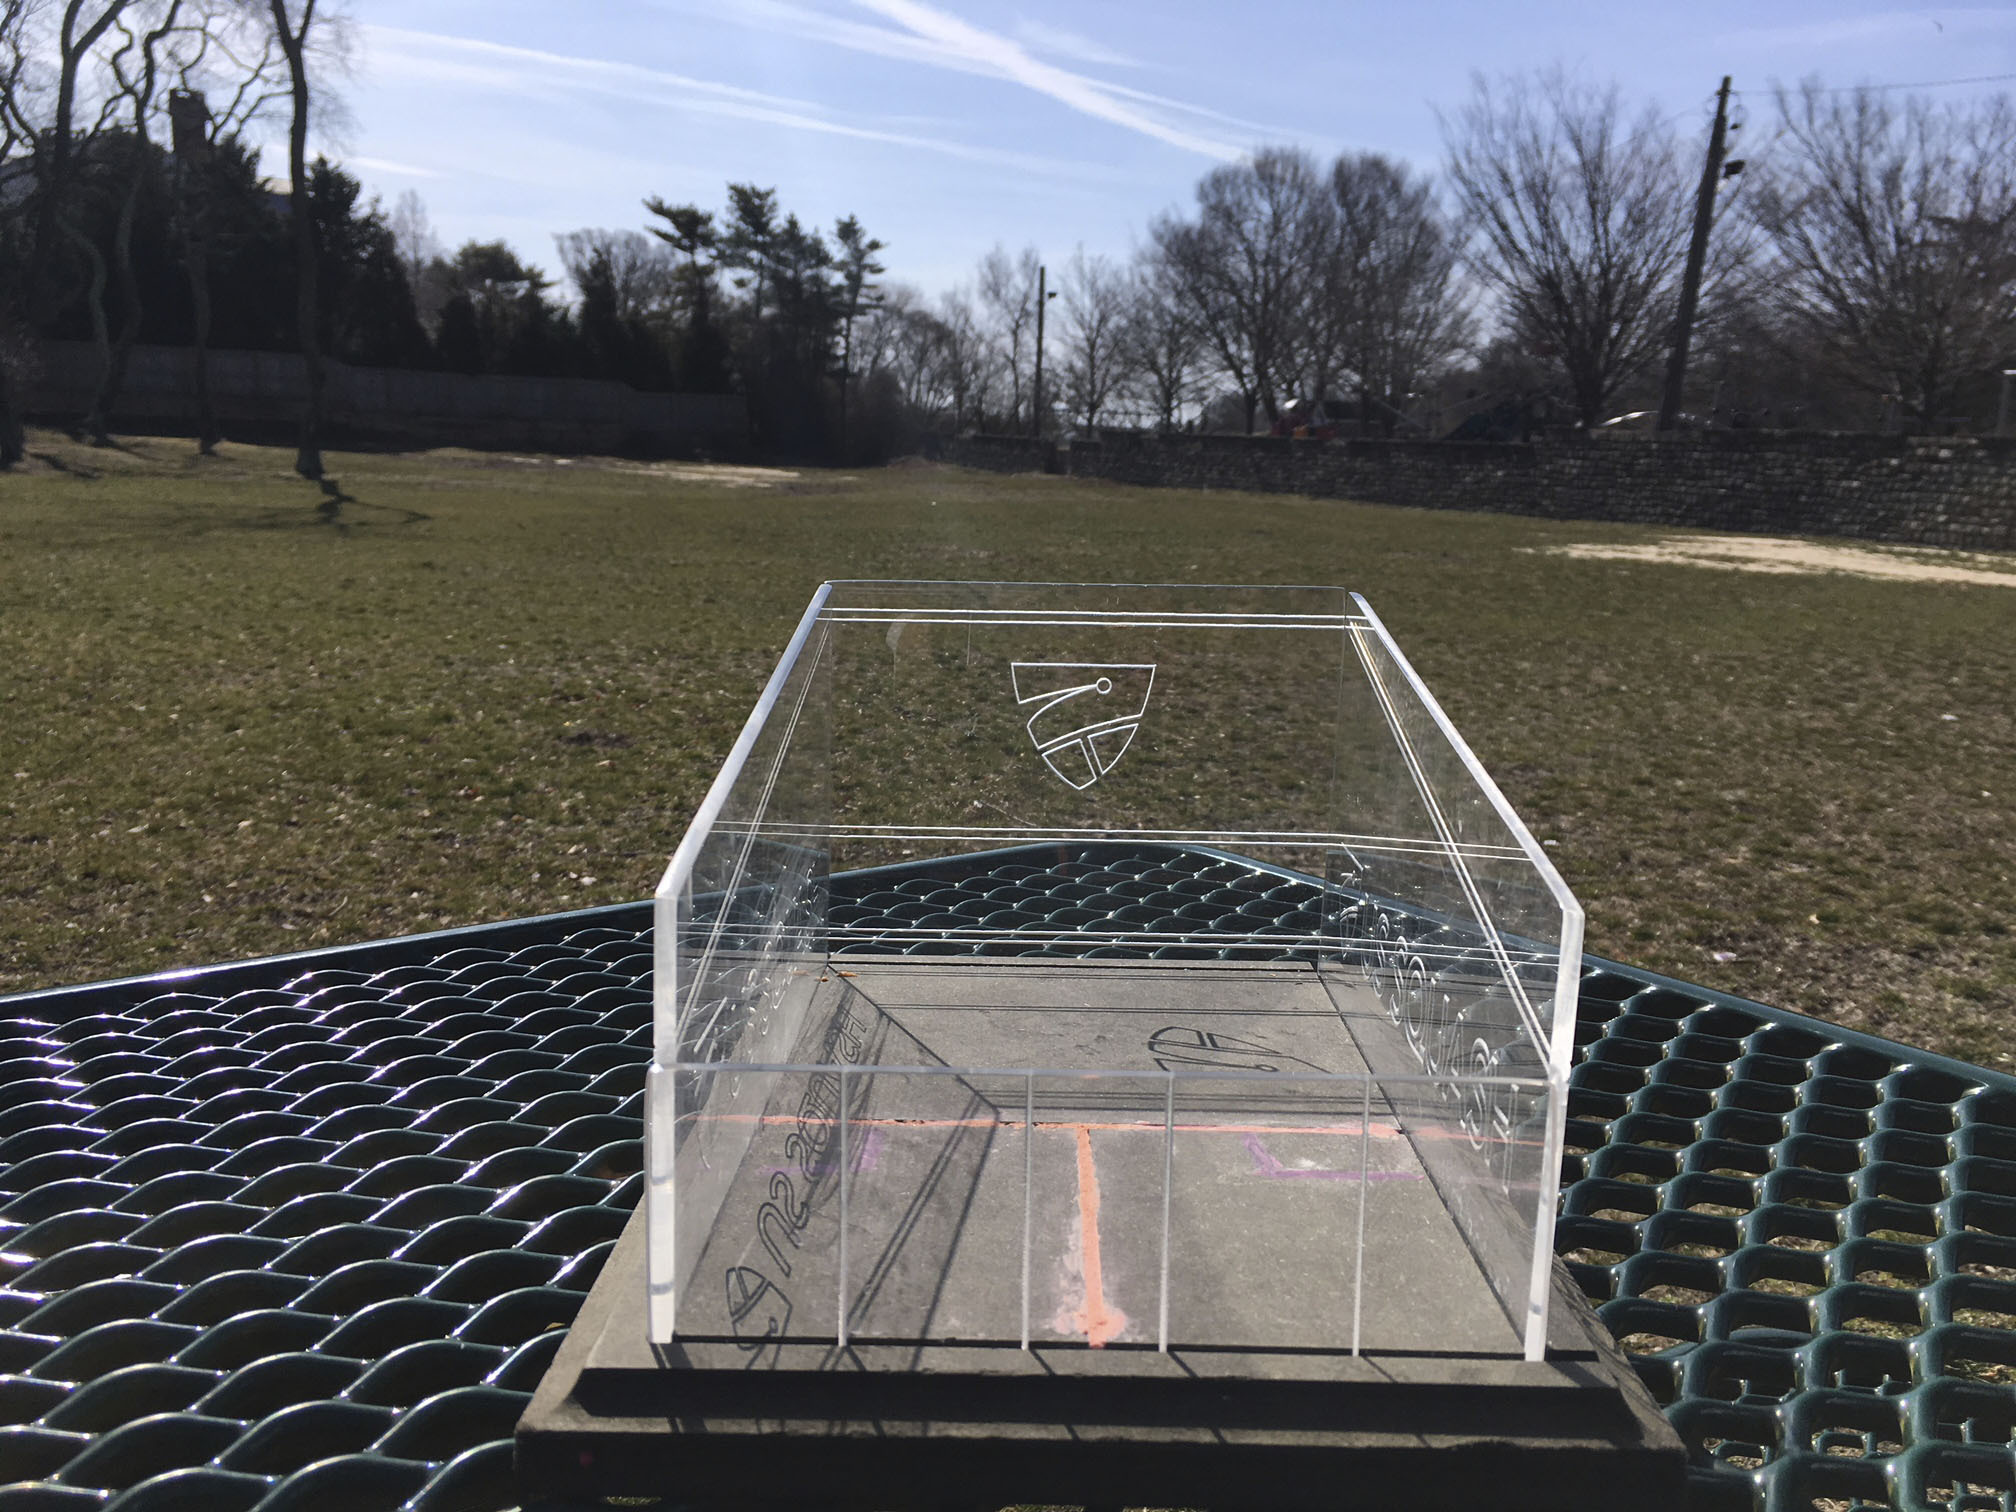 A miniature replica of a glass squash court like the one that may be installed now behind the Southampton Arts Center in Southampton Village.